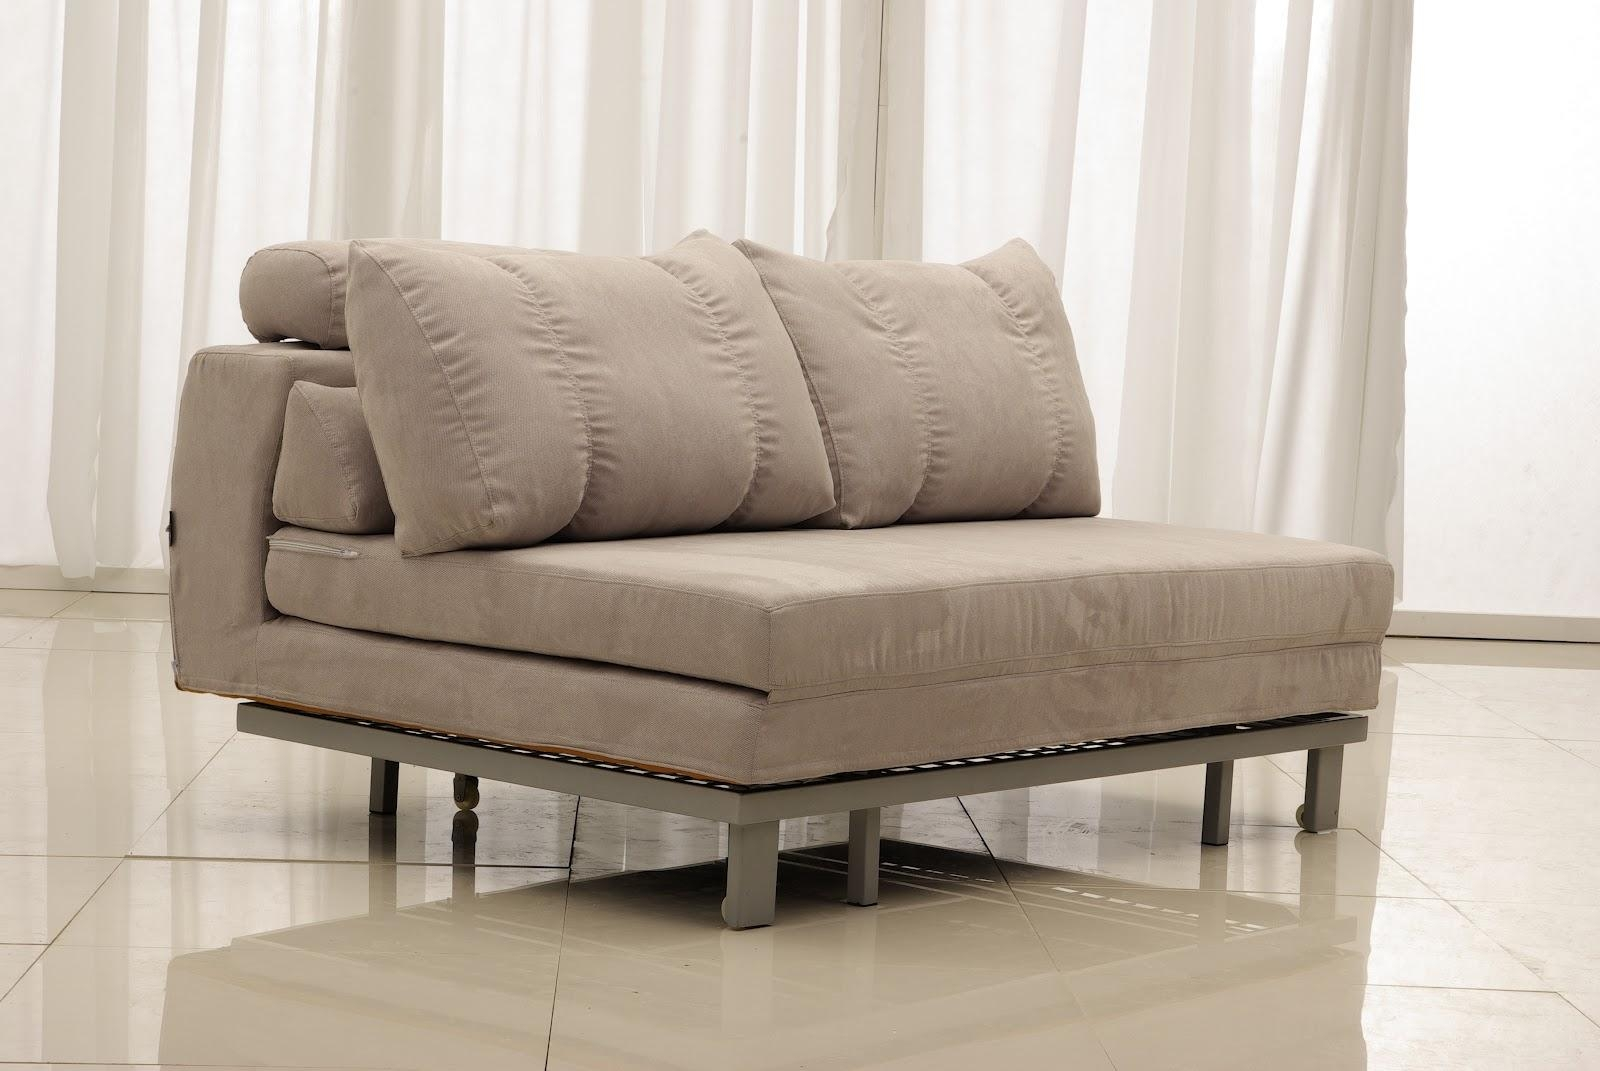 Beautiful Most Comfortable Sleeper Sofa 2017 80 With Additional With San Diego Sleeper Sofas (View 14 of 20)